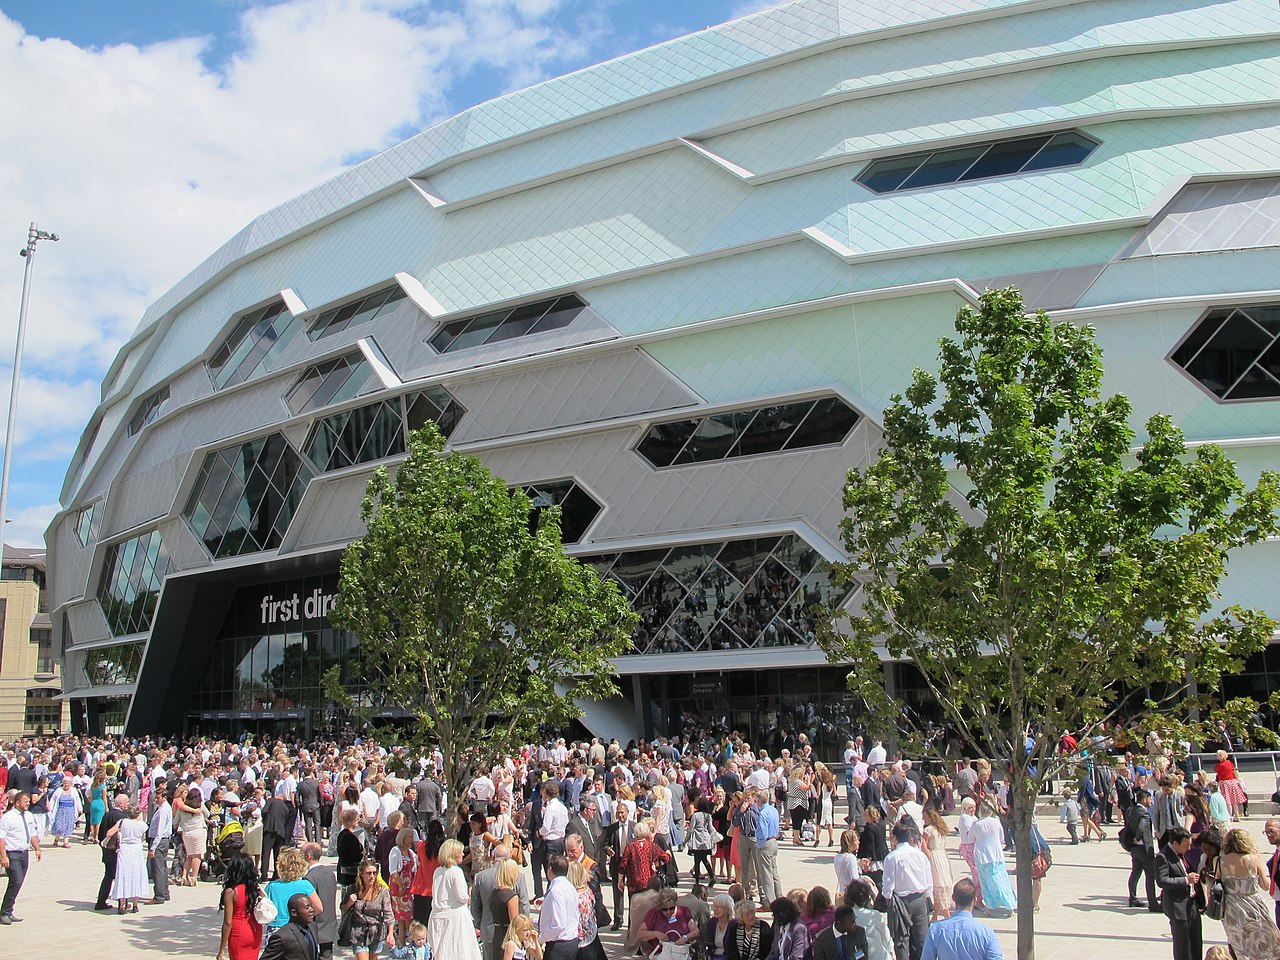 1280px-The_Leeds_First_Direct_Arena.jpg